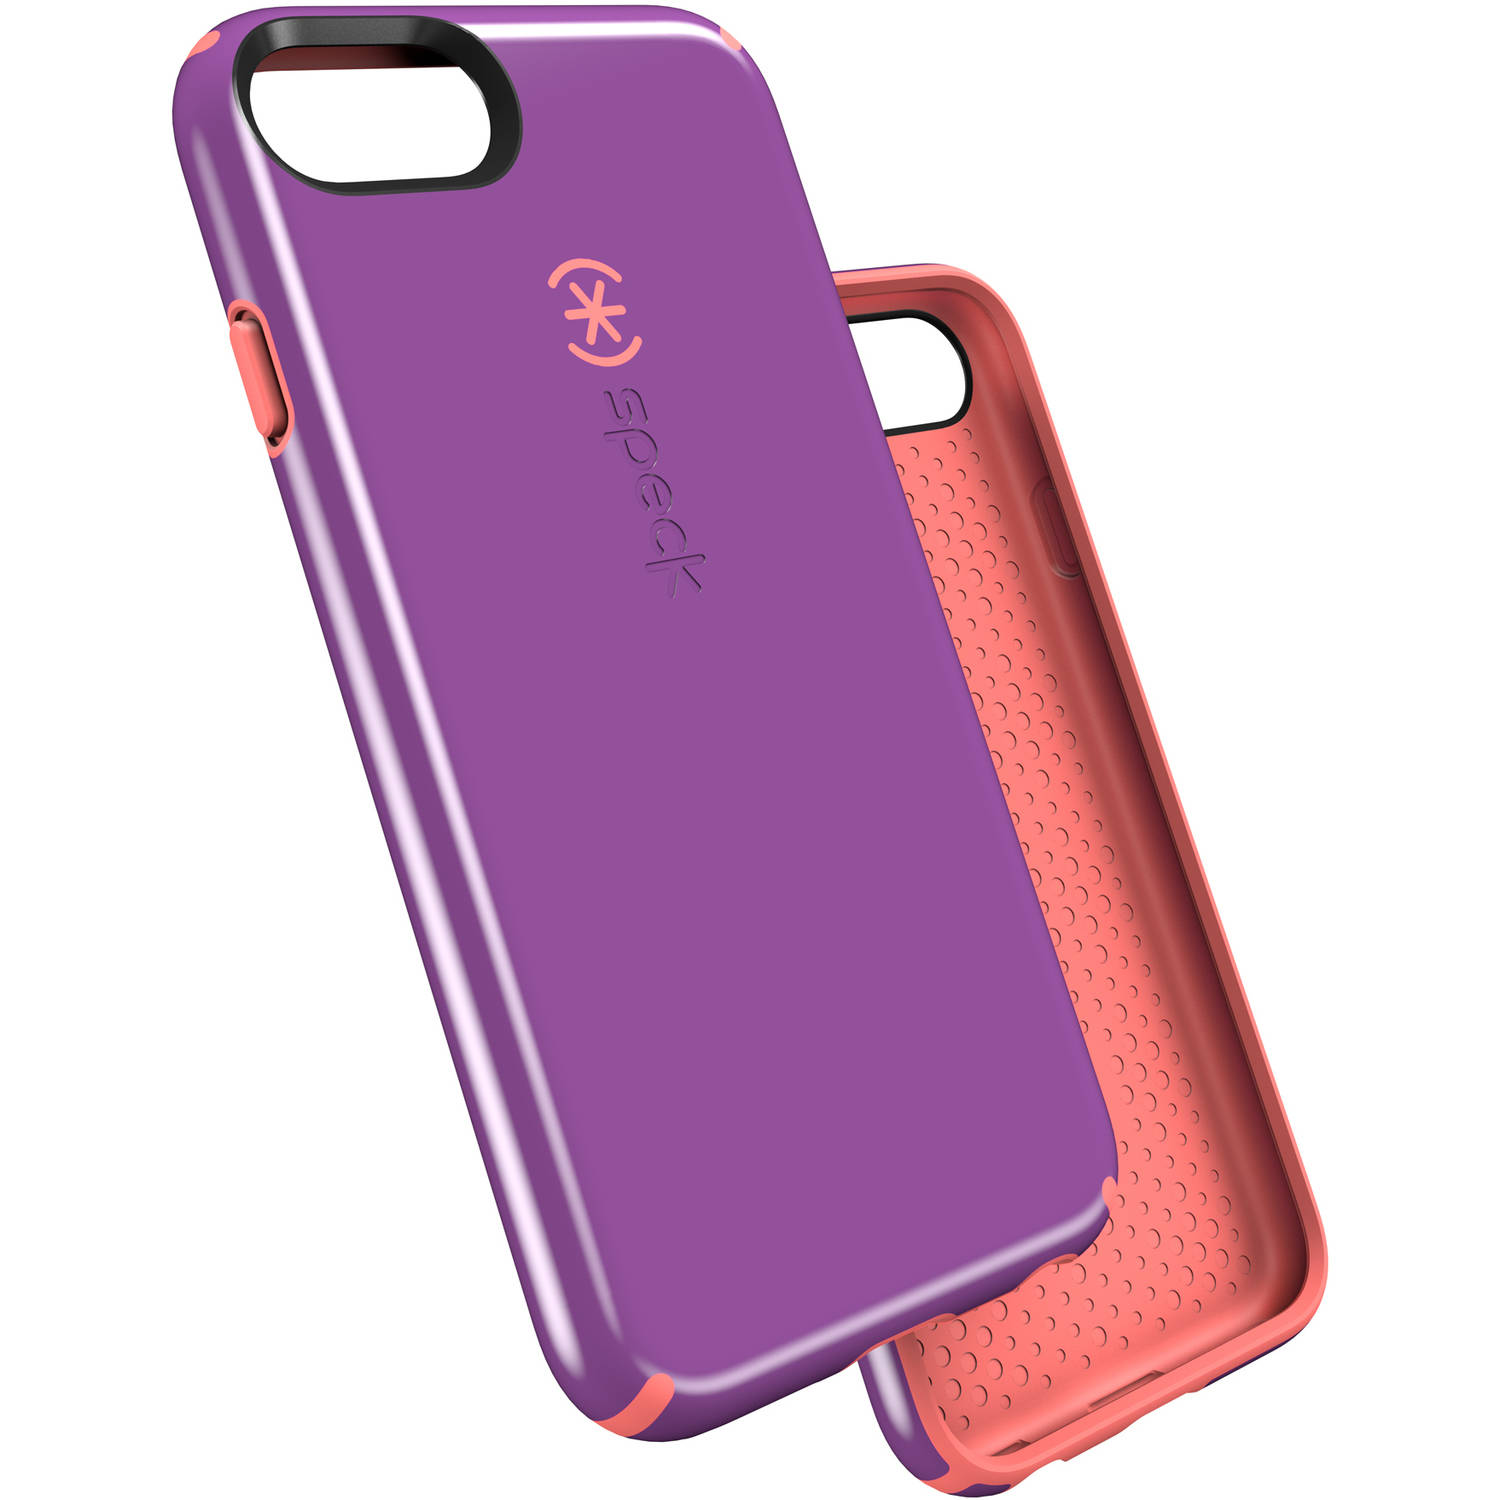 Speck CandyShell Case for Apple iPhone 6 Plus and iPhone 7 Plus, Purple